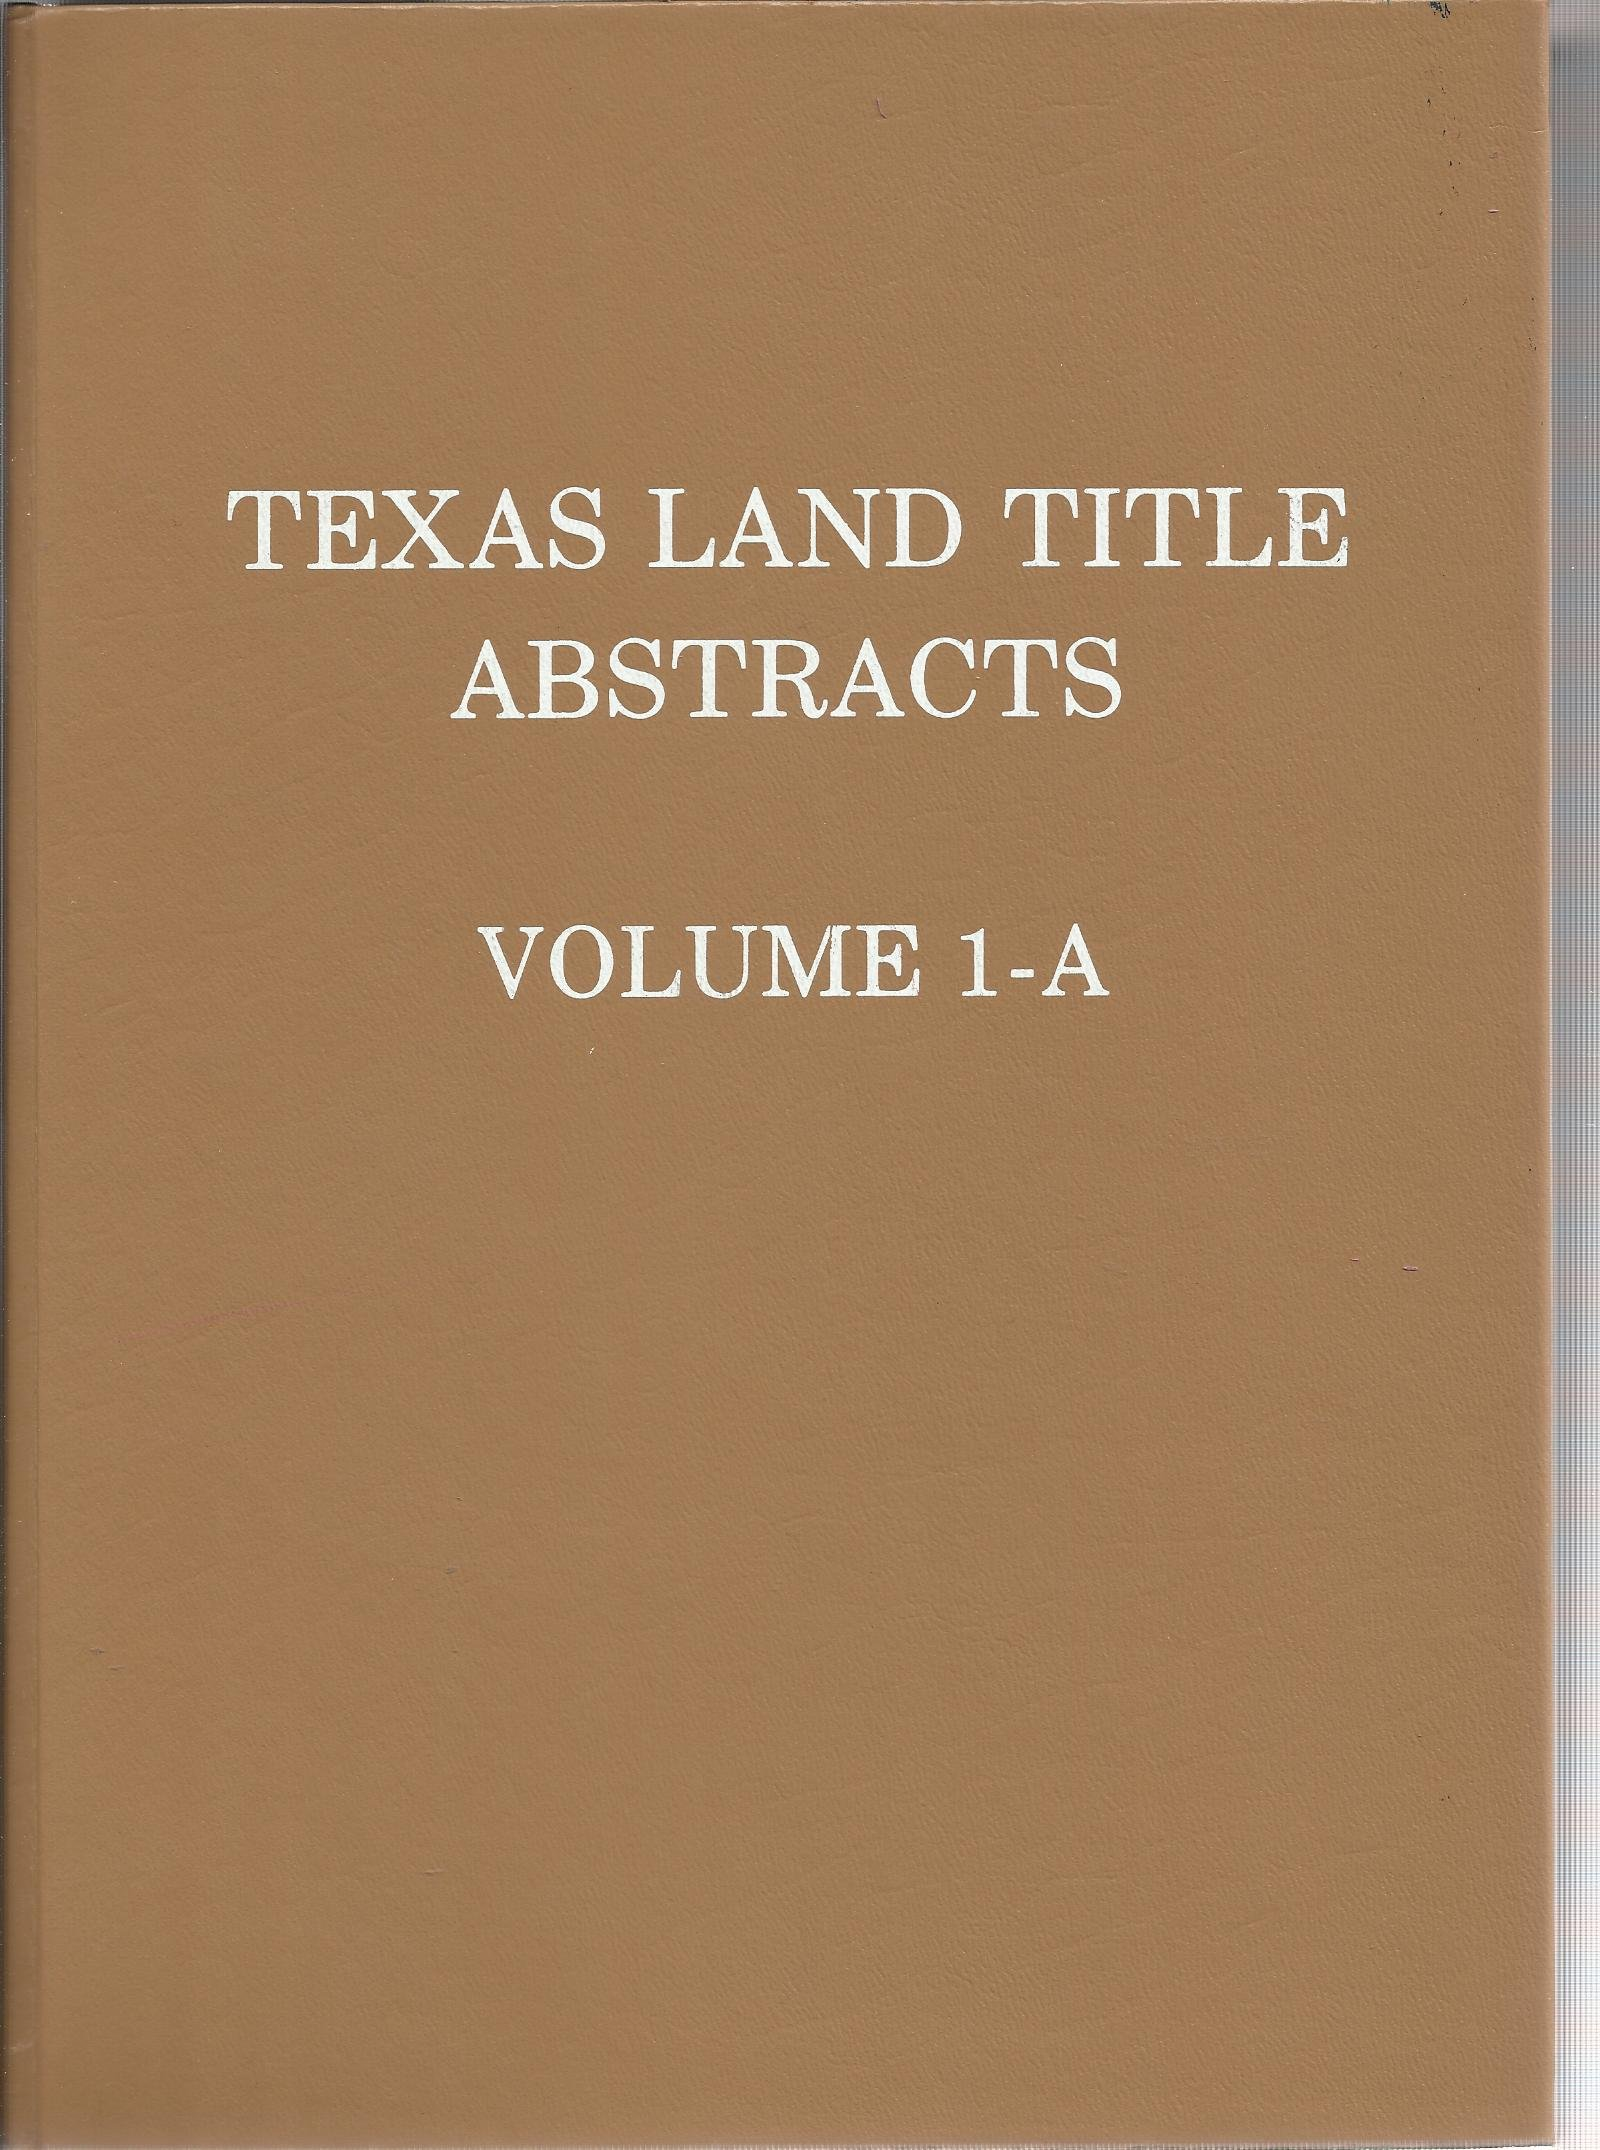 Texas Land Title Abstracts